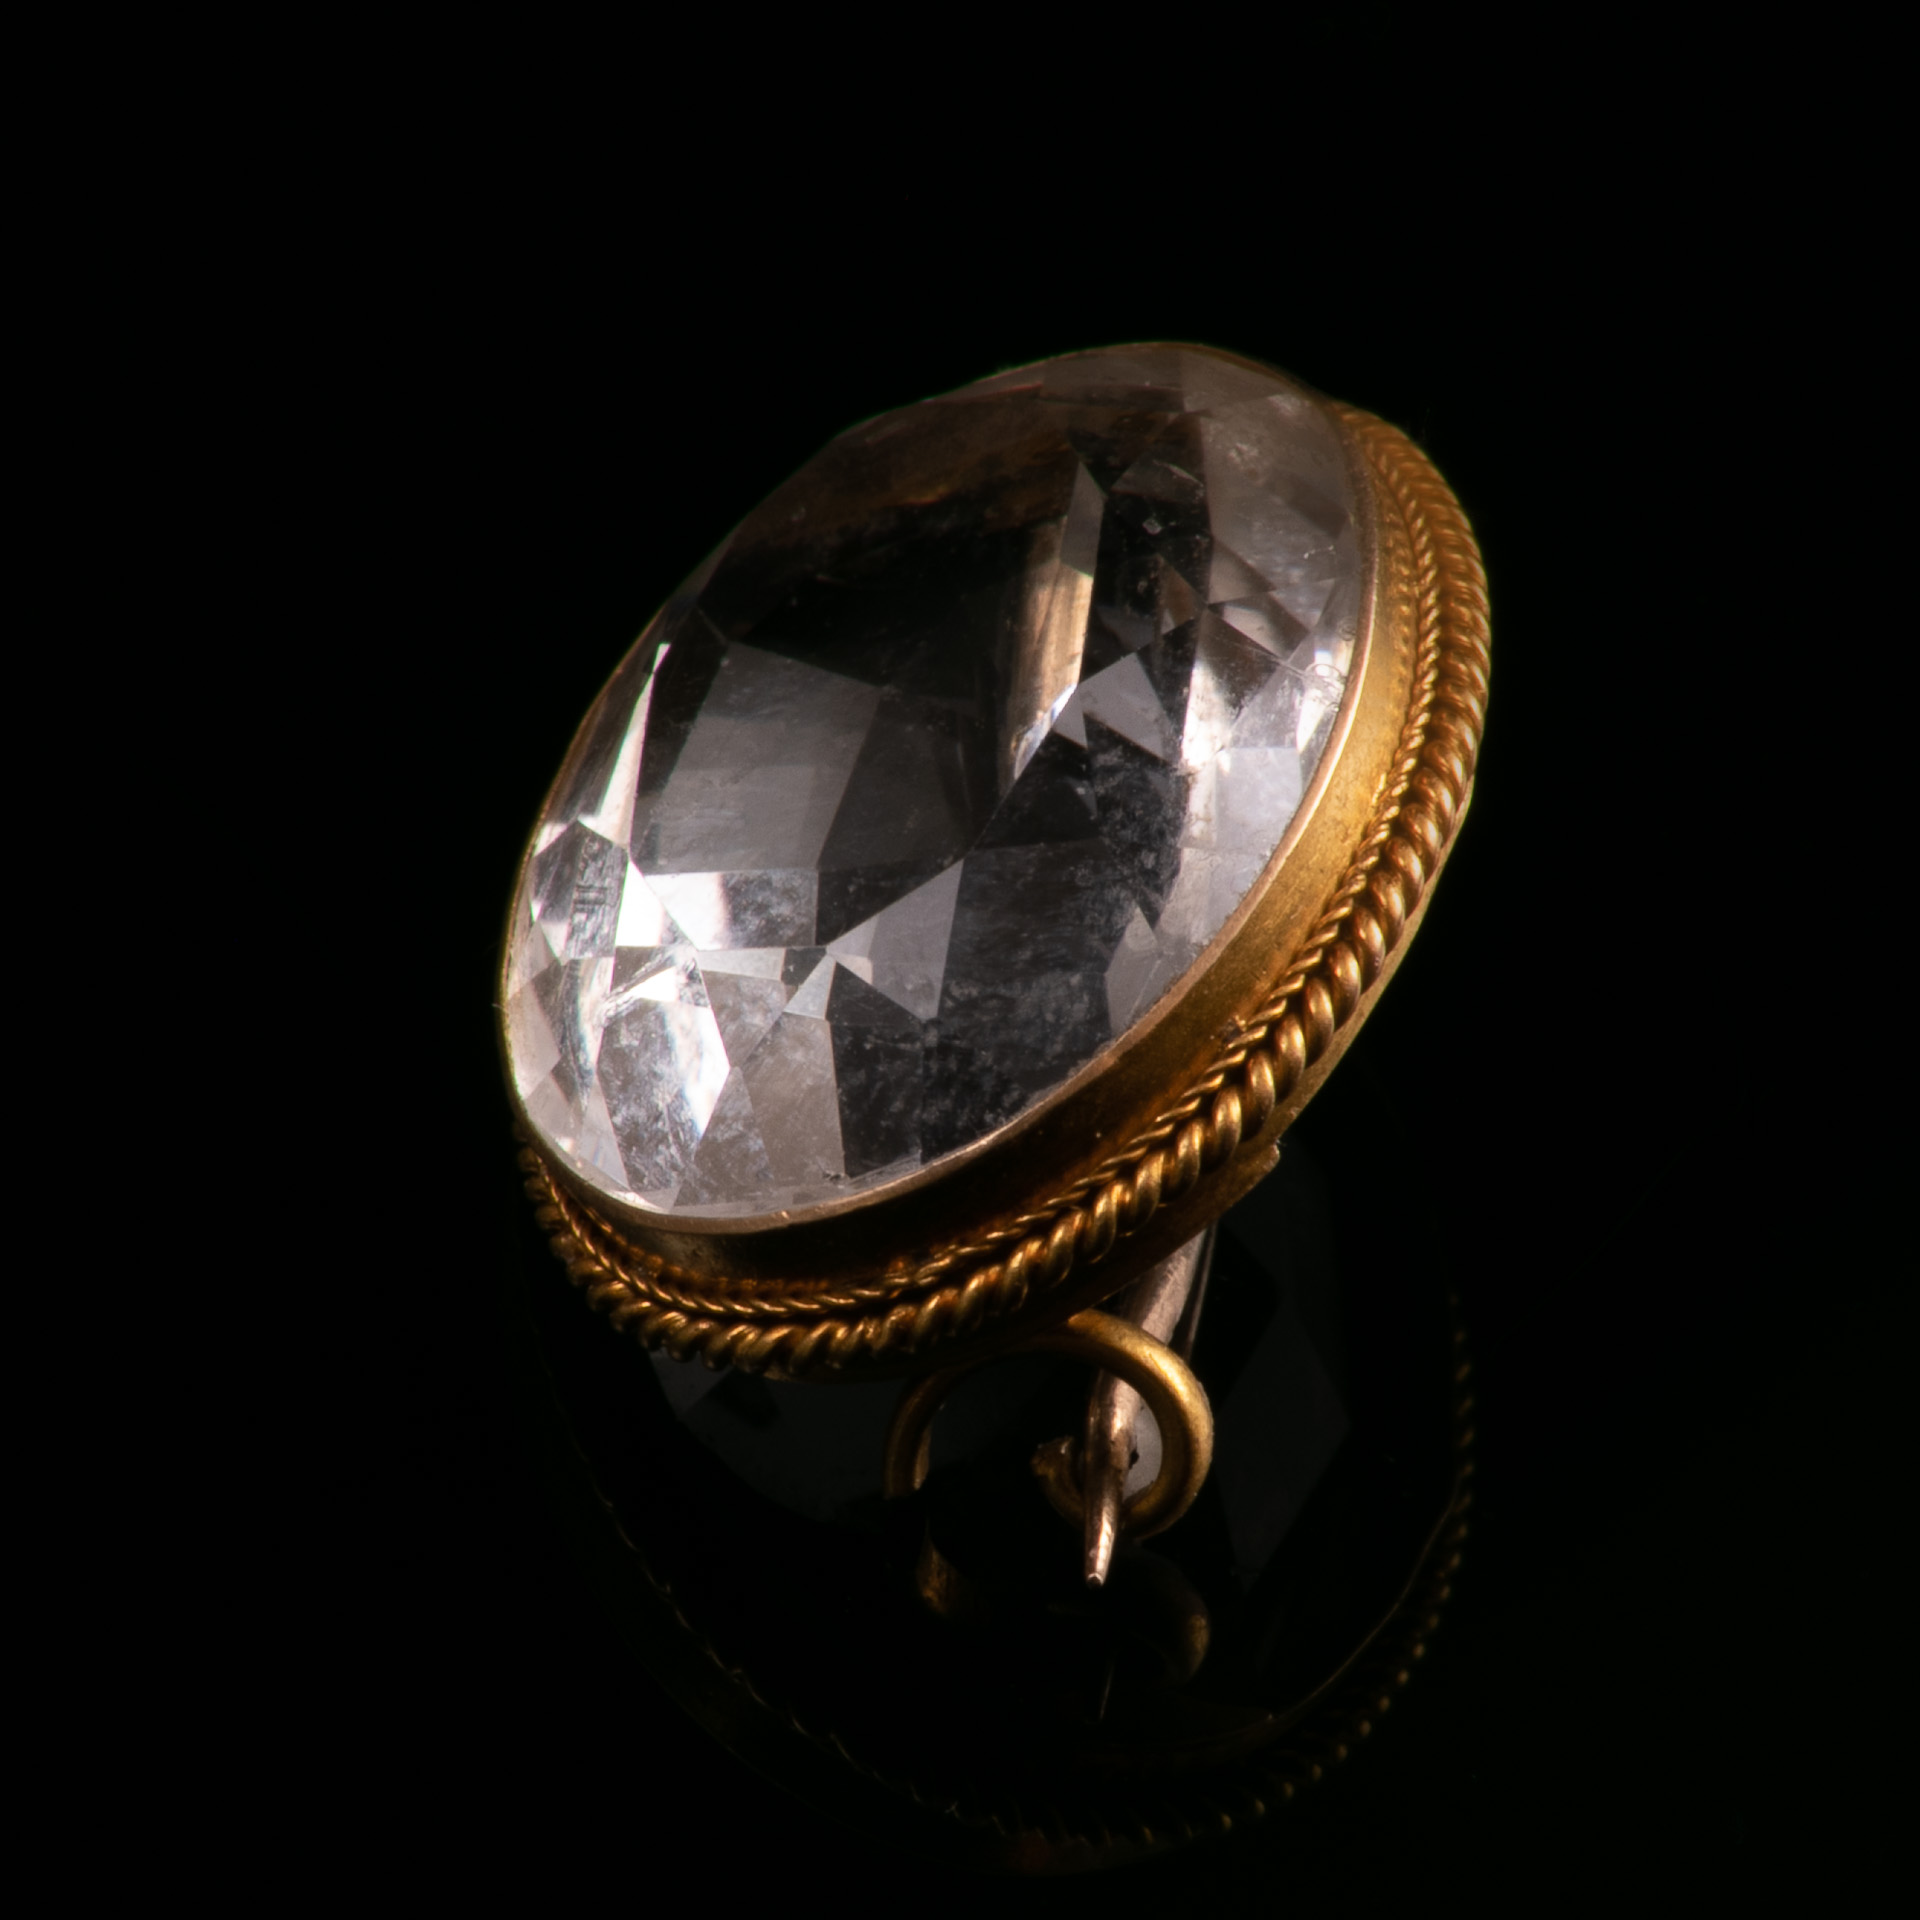 18ct Gold Victorian Faceted Rock Crystal Brooch - Image 2 of 5